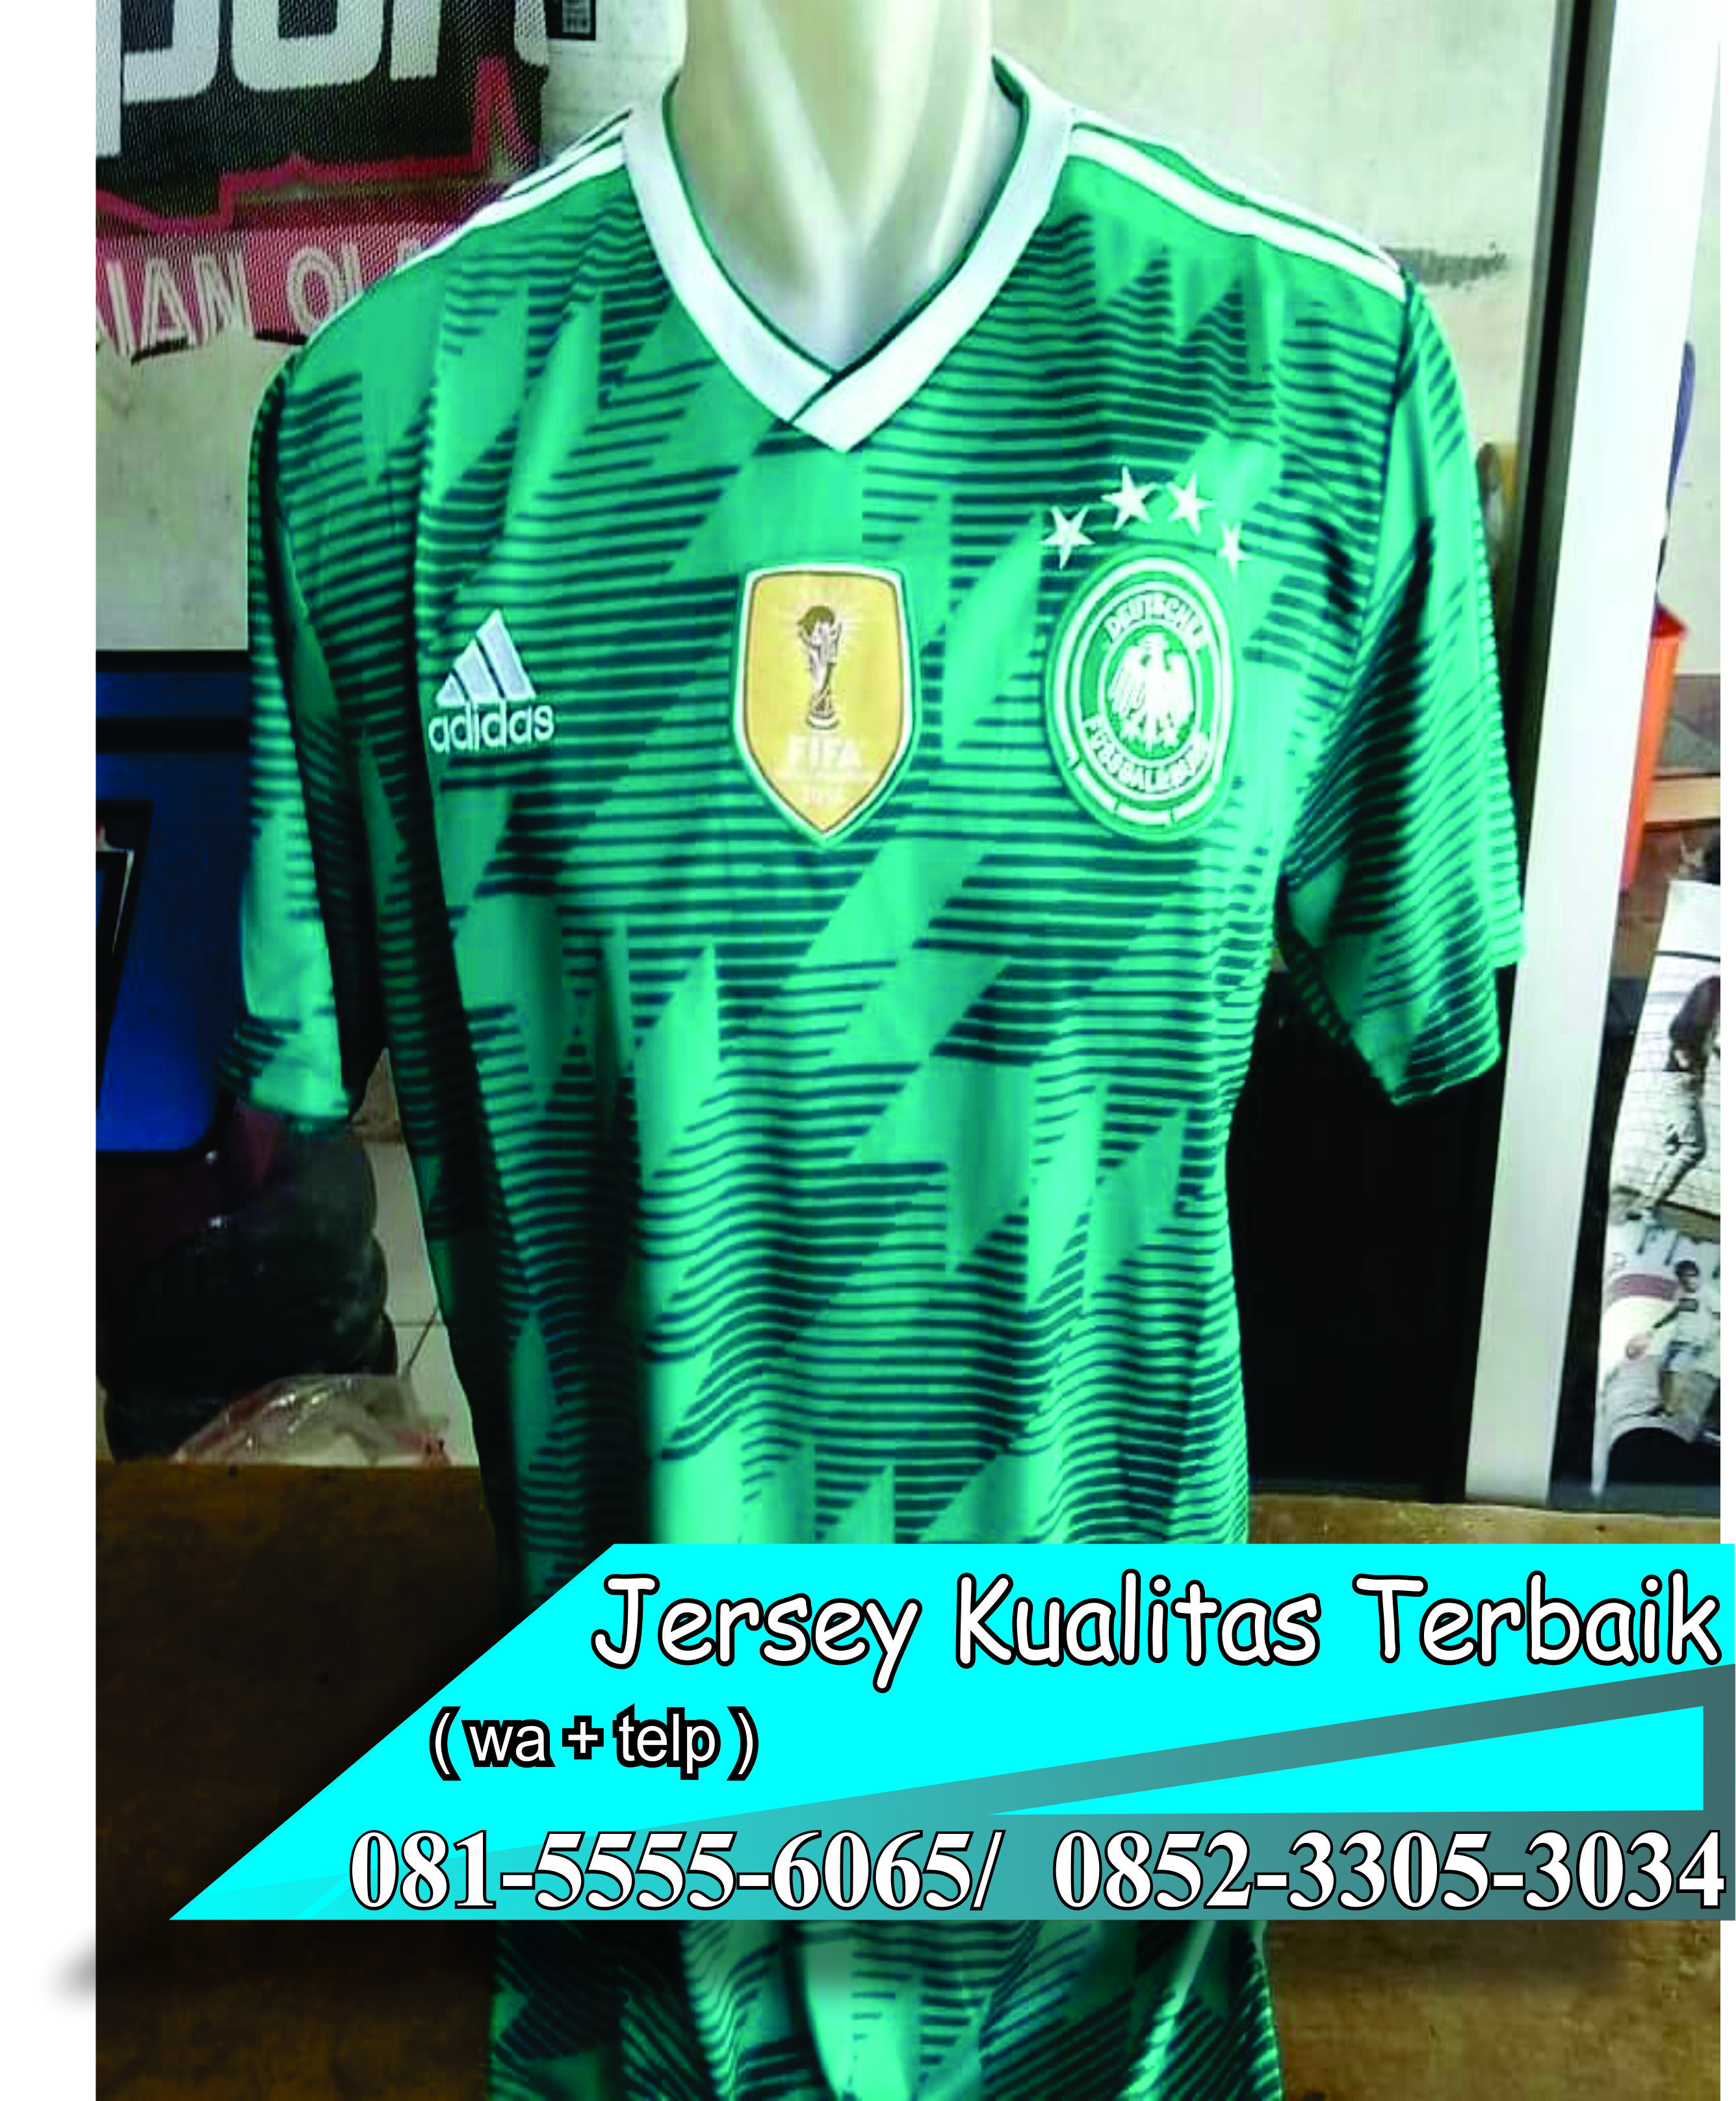 Download Pin Di Kaos Jersey Murah